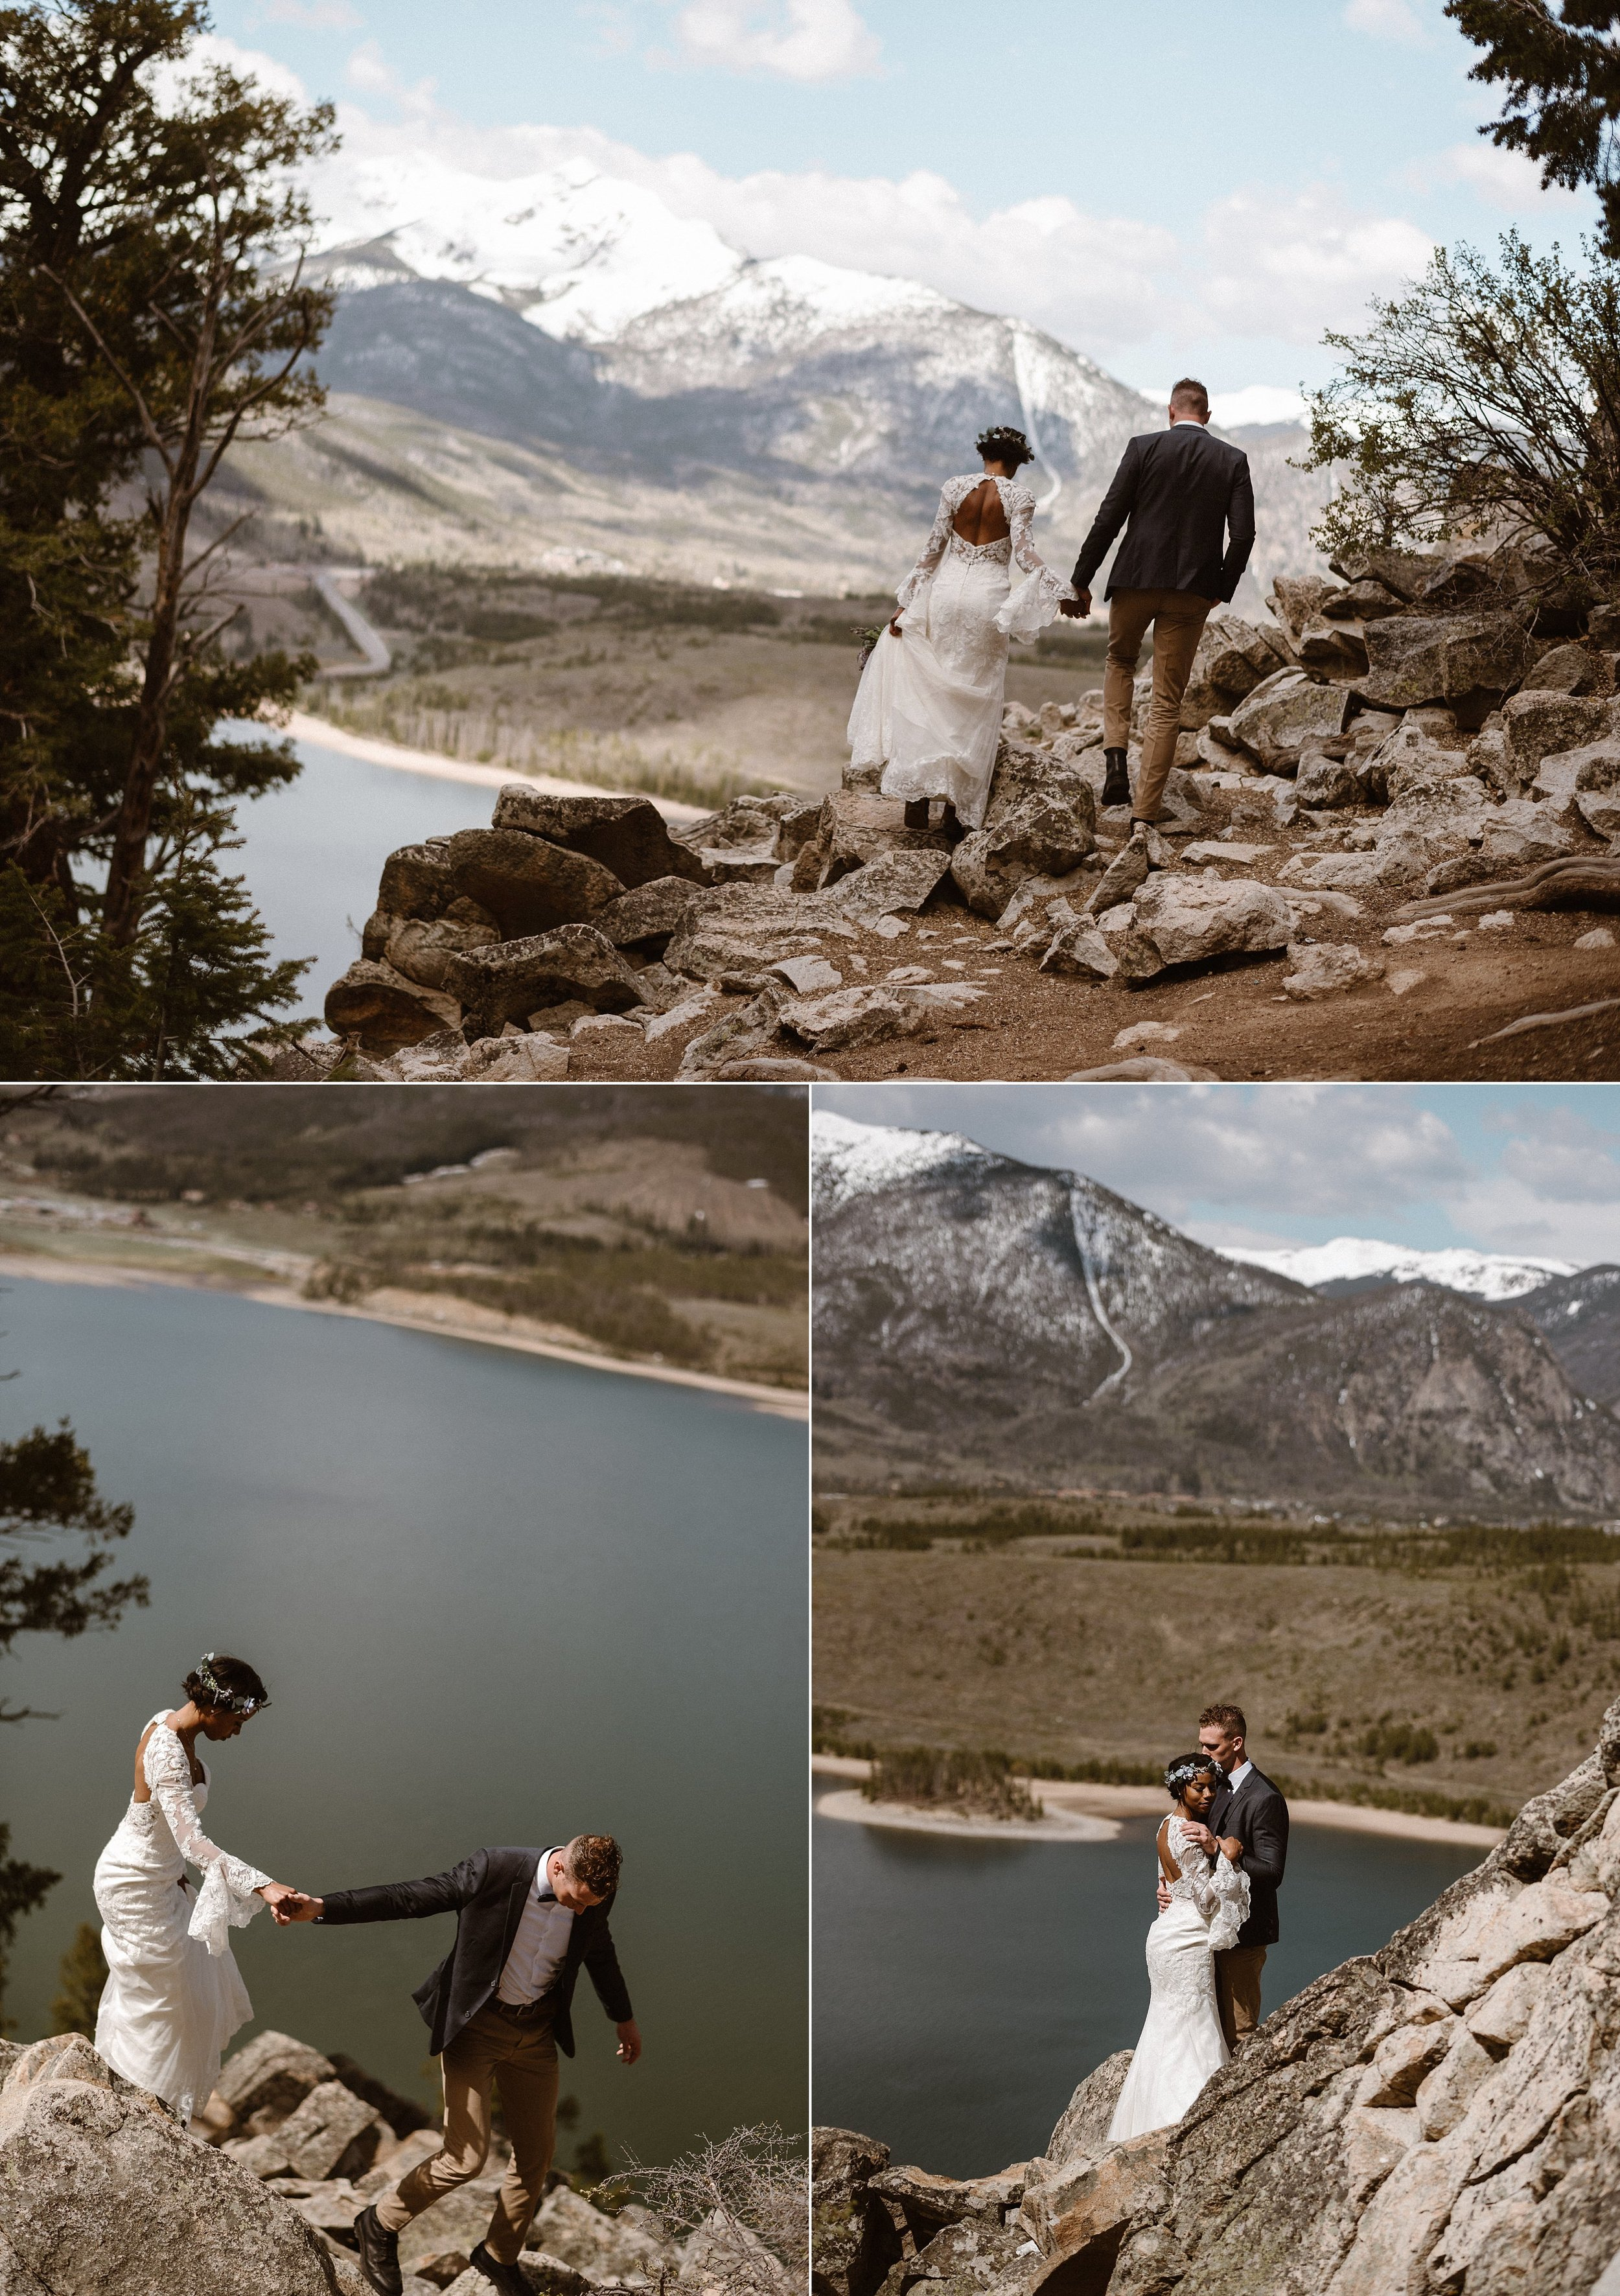 Continuing their adventurous elopement, Mikayla and Jared trekked even further trying to get as close to Dillon reservoir, just north of Breckinridge Colorado. Their intimate wedding photographer Maddie Mae, capturing each affectionate moment.